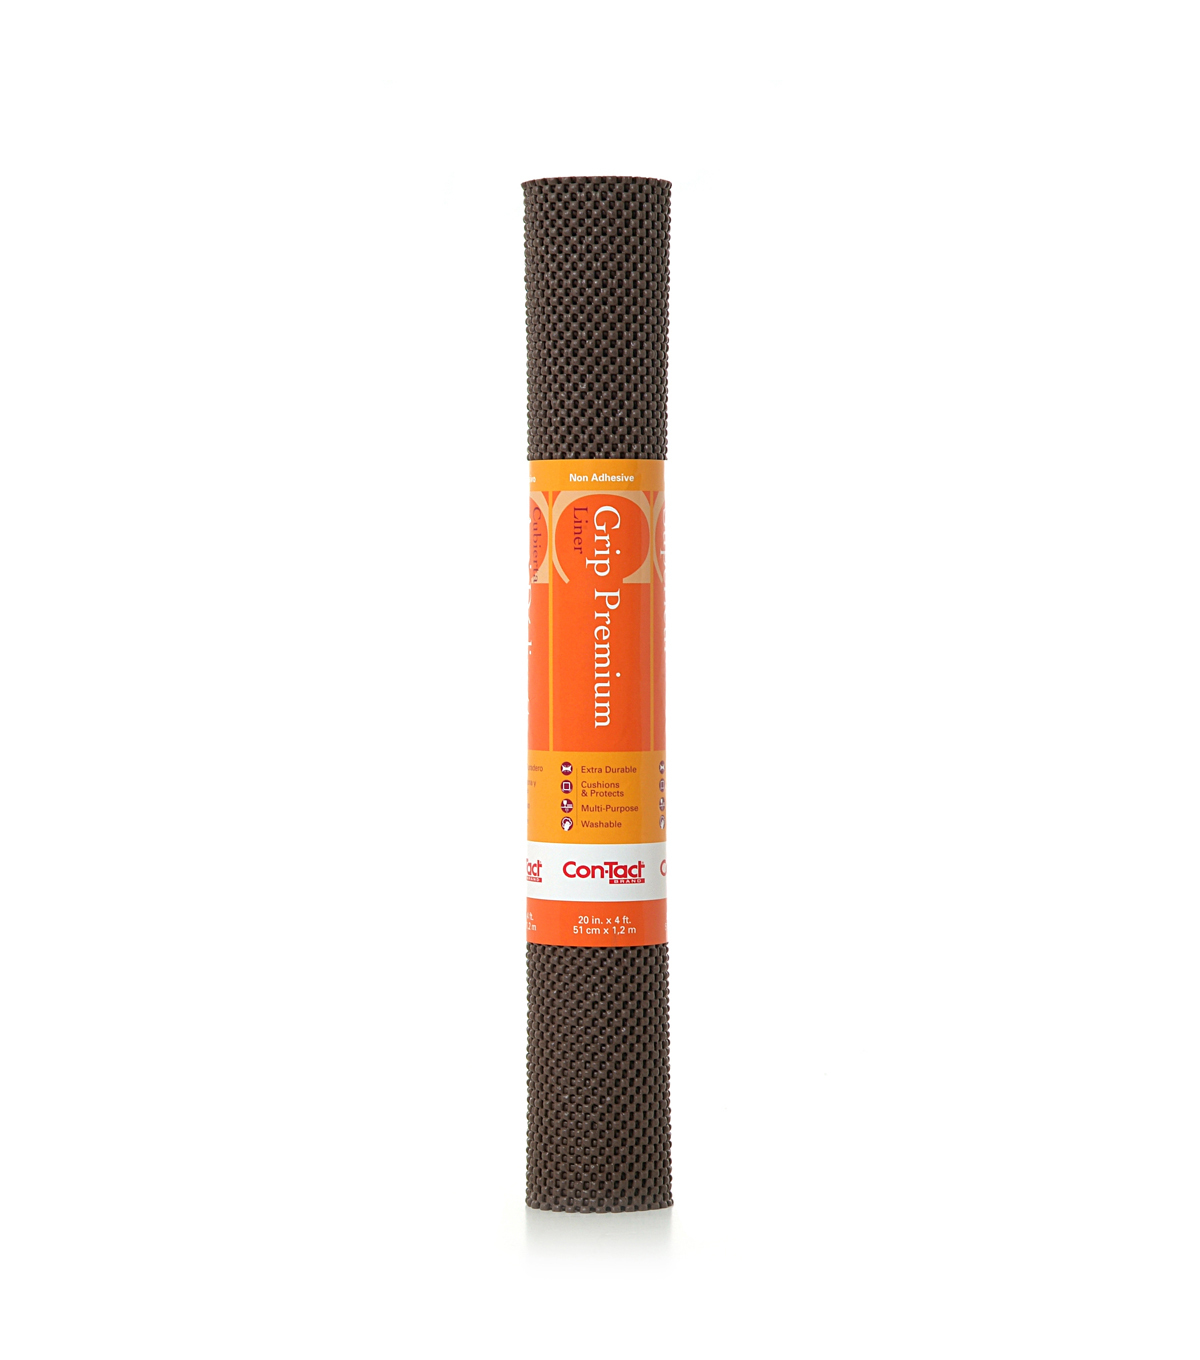 20in x 4ft Contact Grip Liner Premium-Chocolate